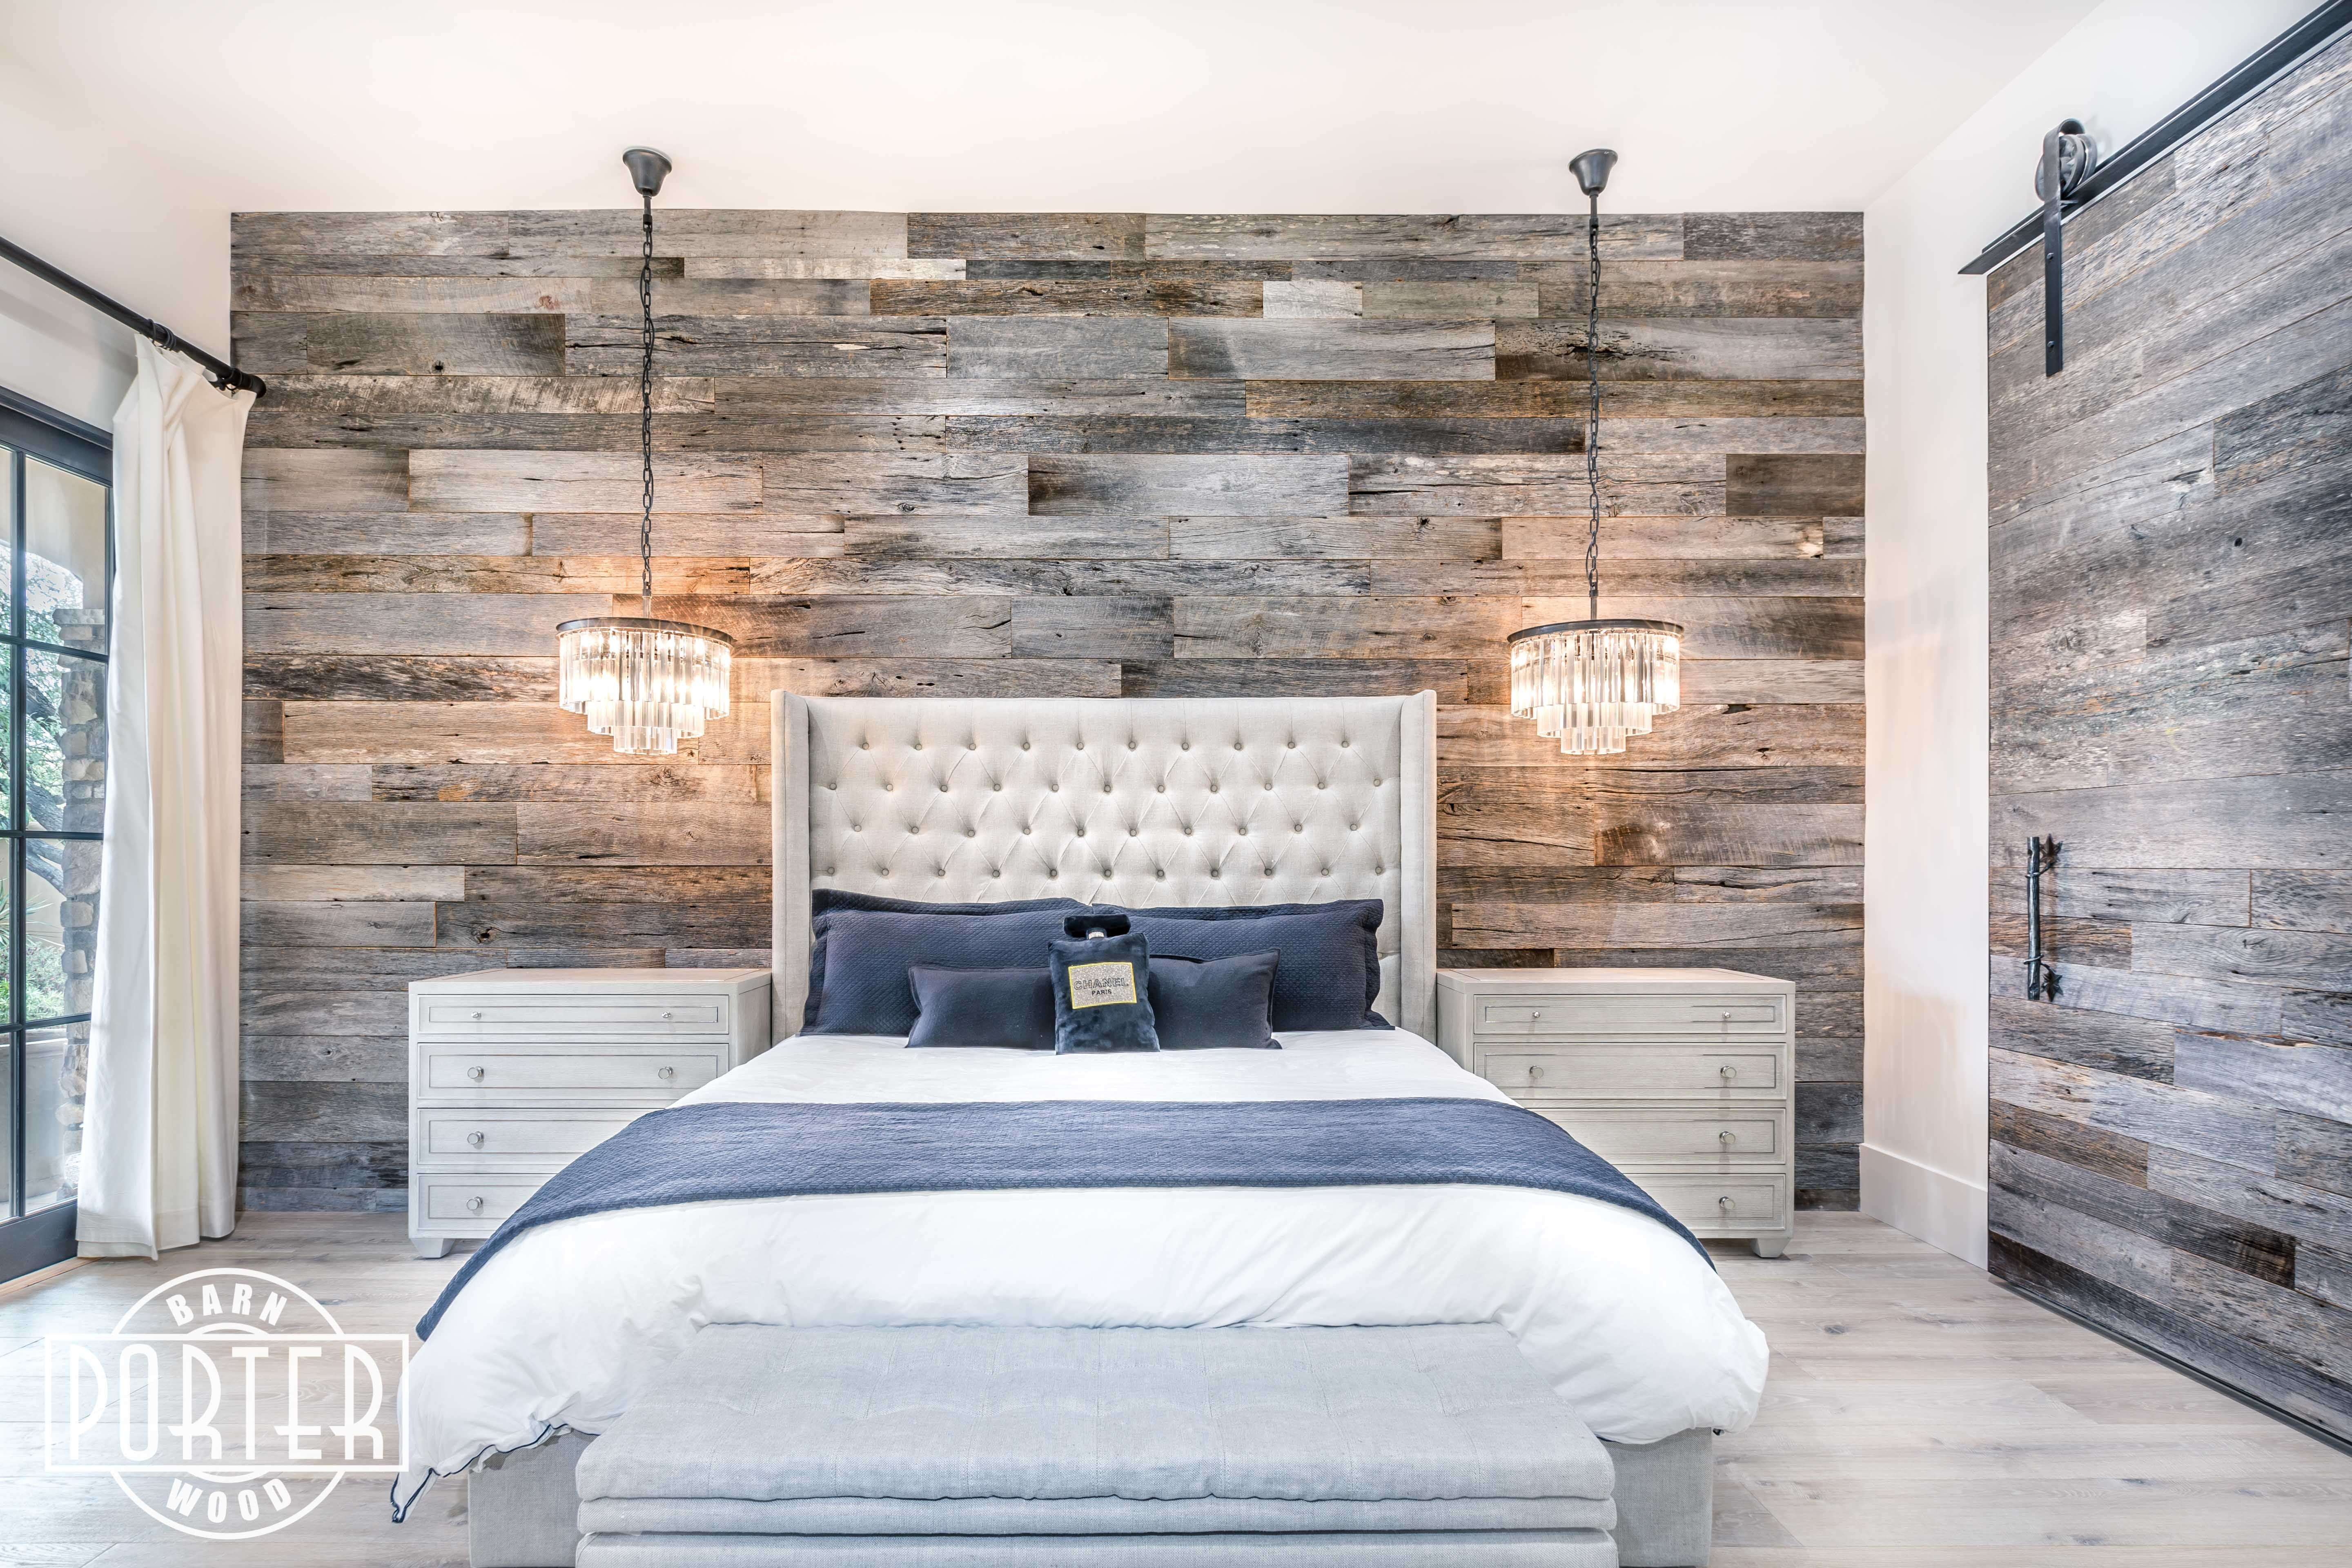 Pbw Tobacco Barn Grey Wood Wall Master Bedroom Rustic Master Bedroom Rustic Bedroom Wood Walls Bedroom